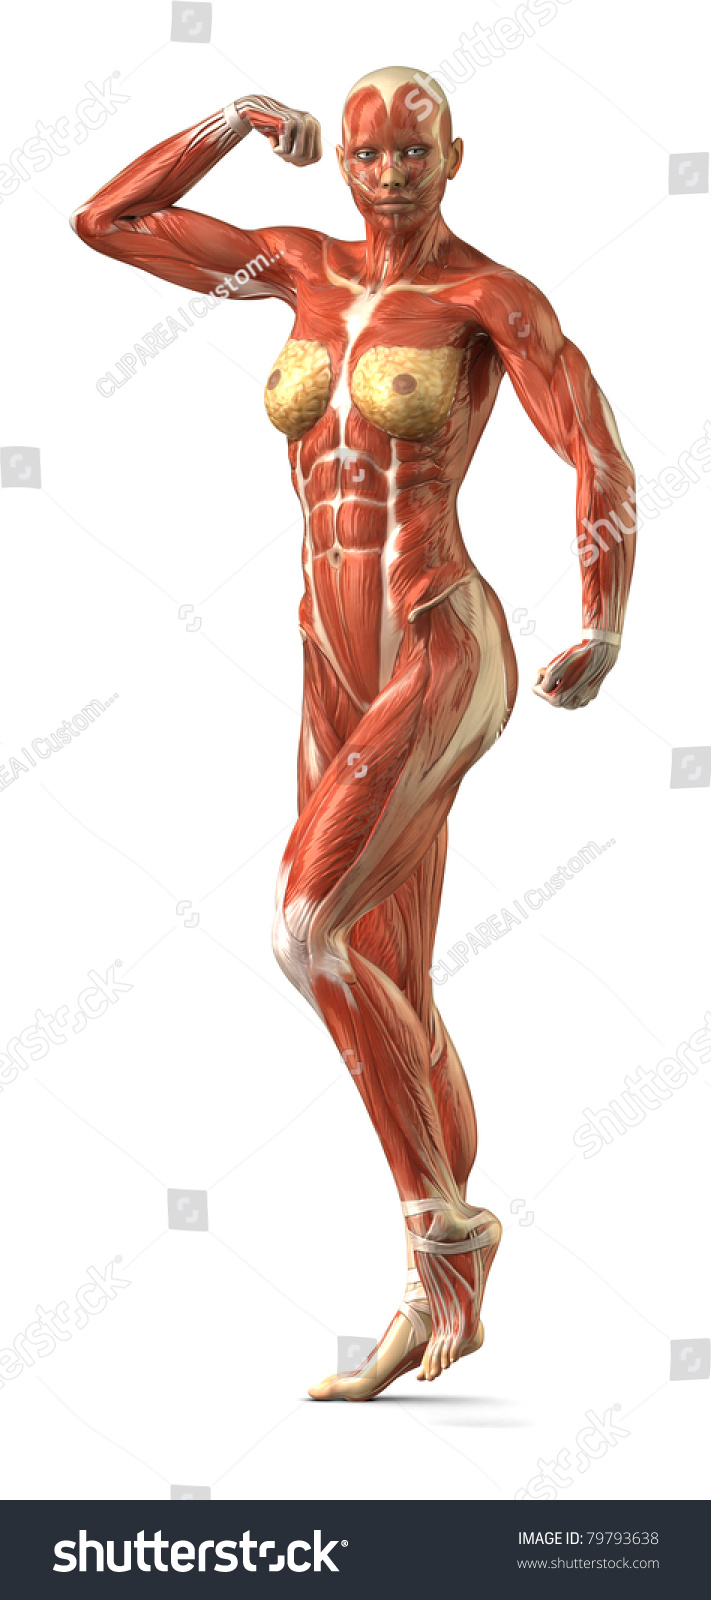 female muscular system bodybuilder position stock illustration, Muscles